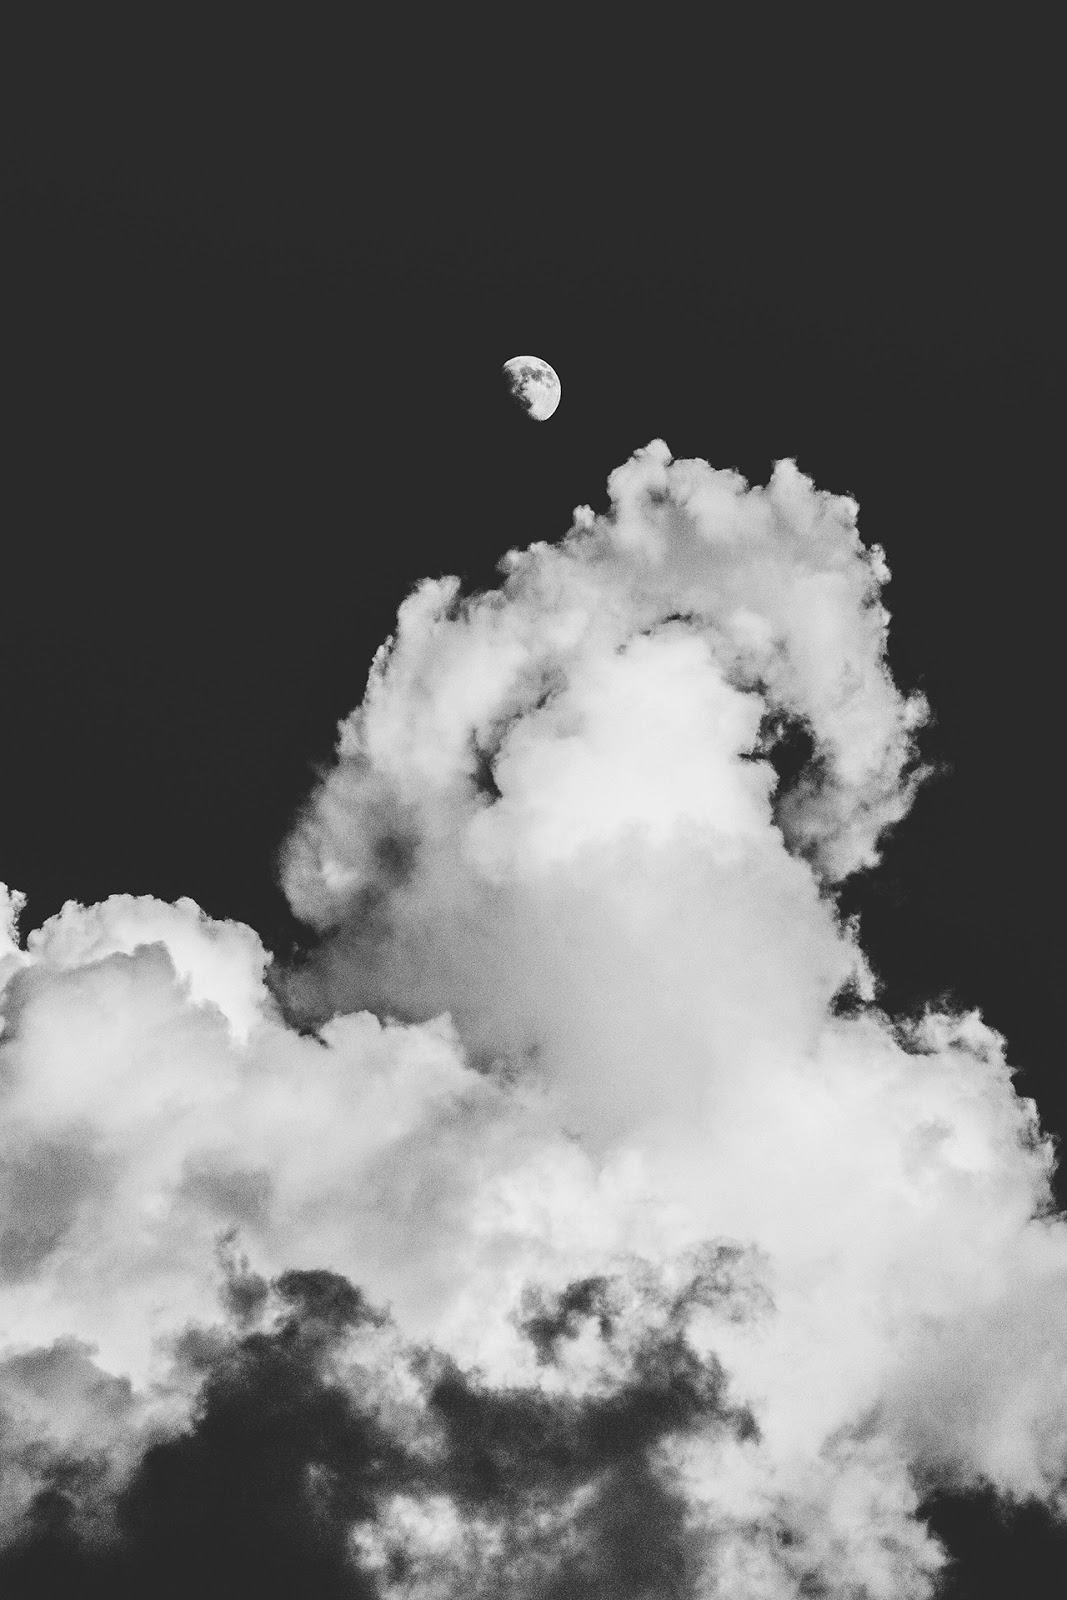 The Moon in the Cloud